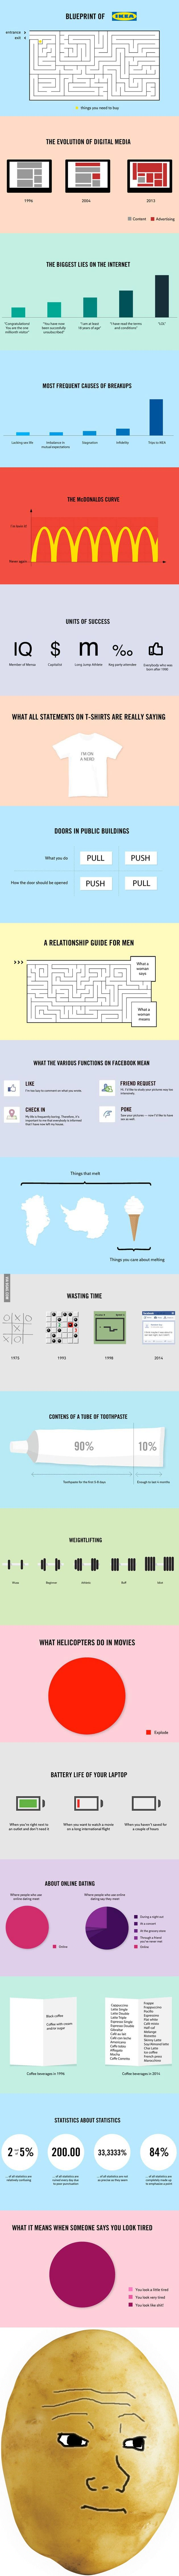 Fun fact info graphic